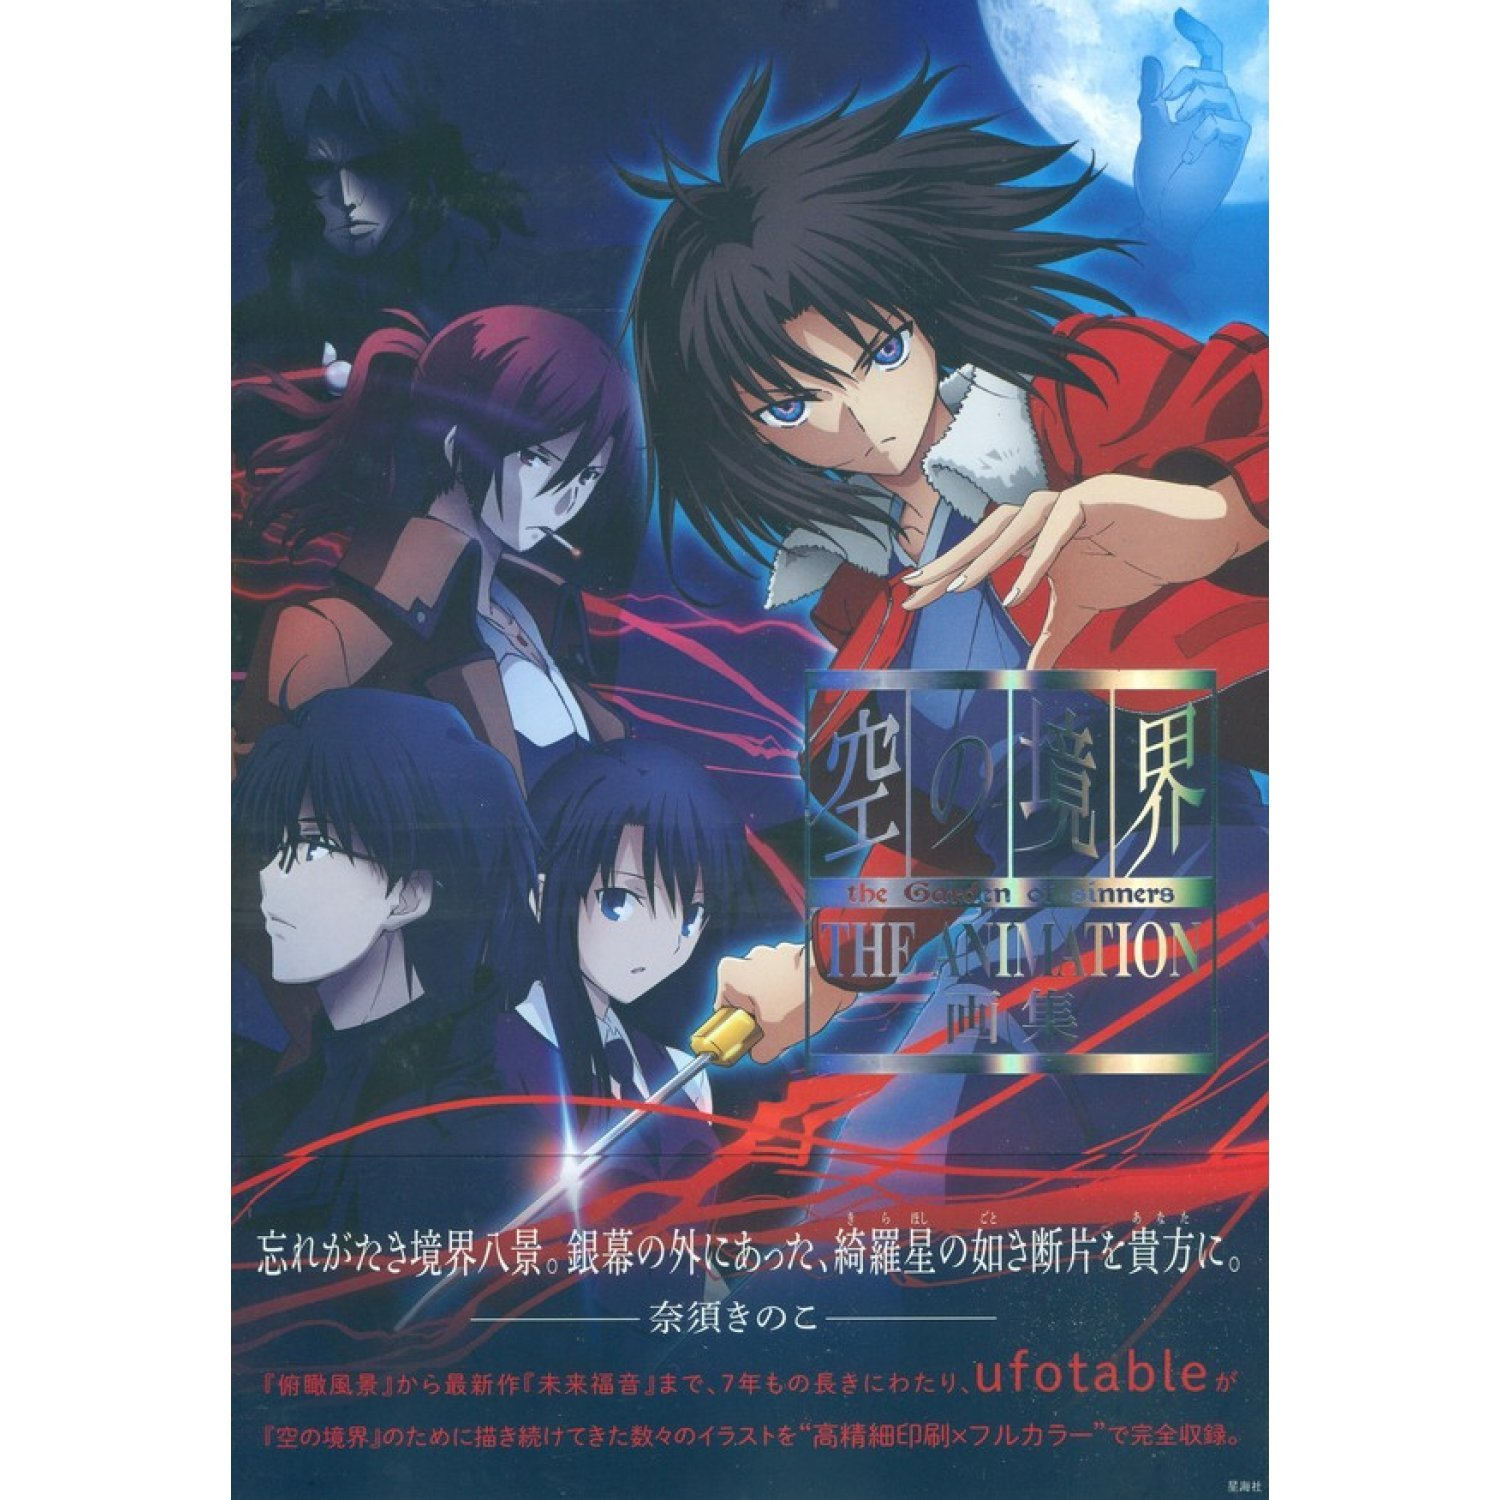 Kara no kyoukai the garden of sinners art book - Kara no kyoukai the garden of sinners ...